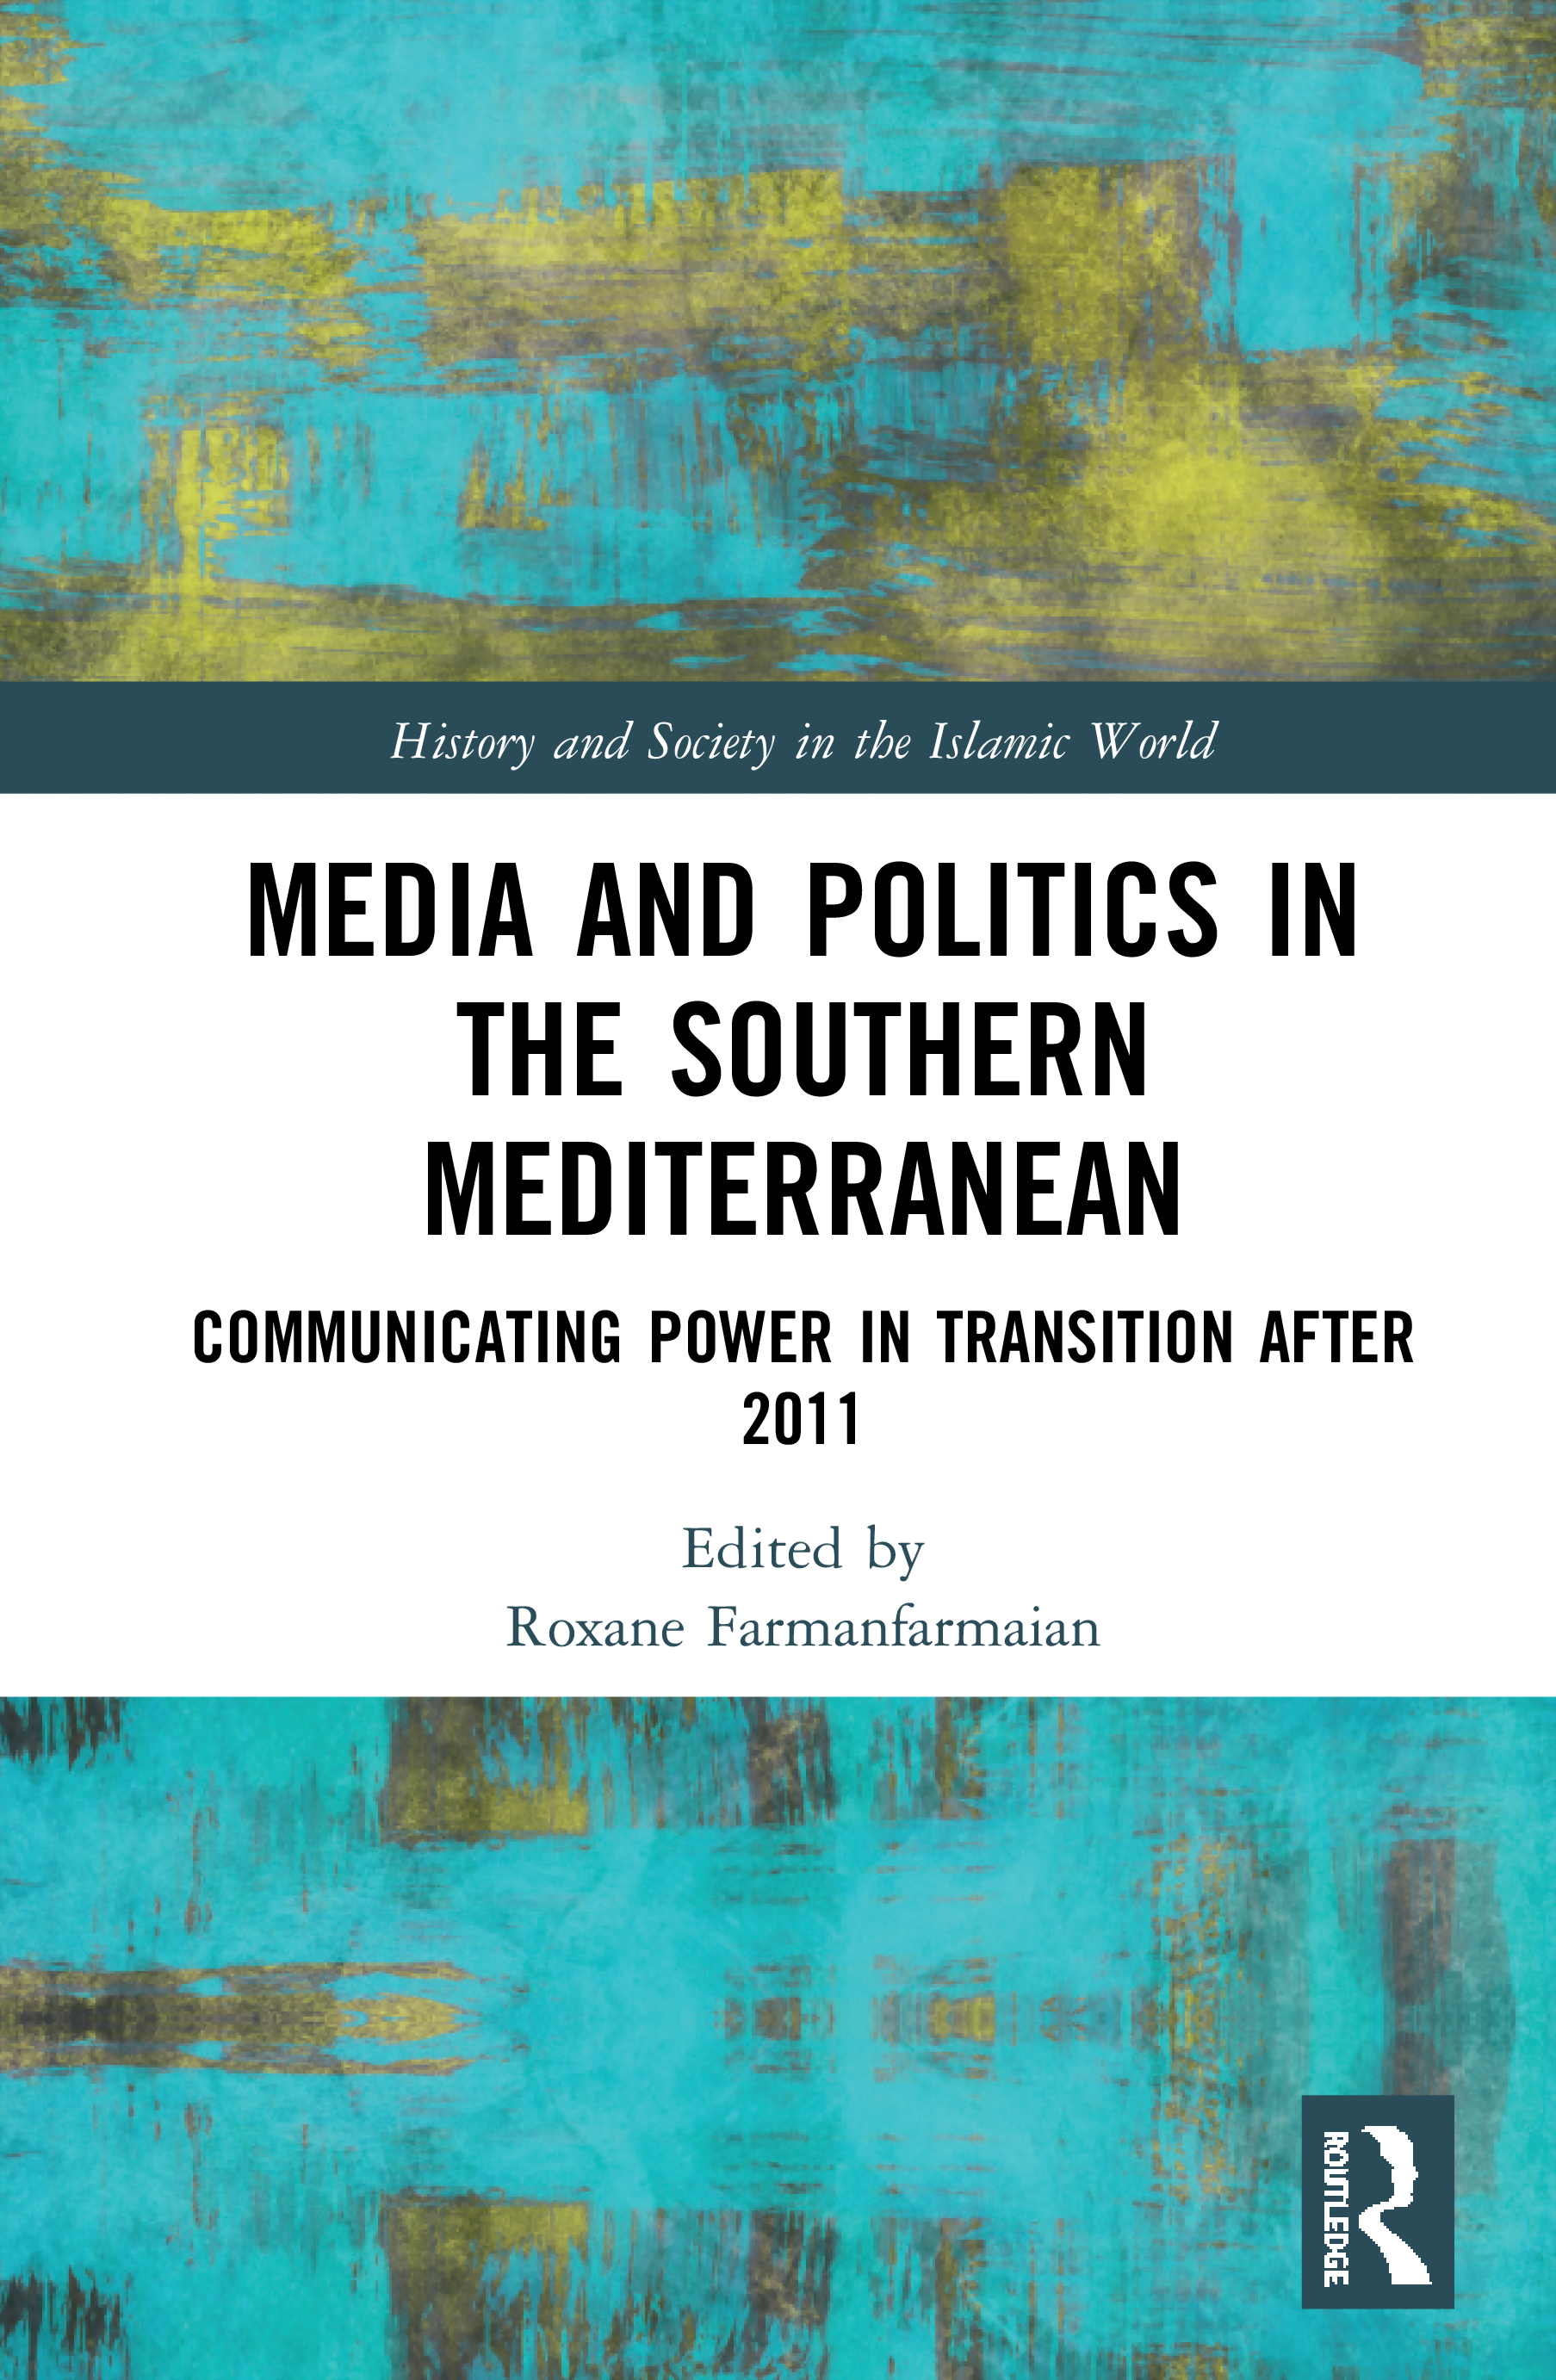 Media and Politics in the Southern Mediterranean: Communicating Power in Transition after 2011 book cover